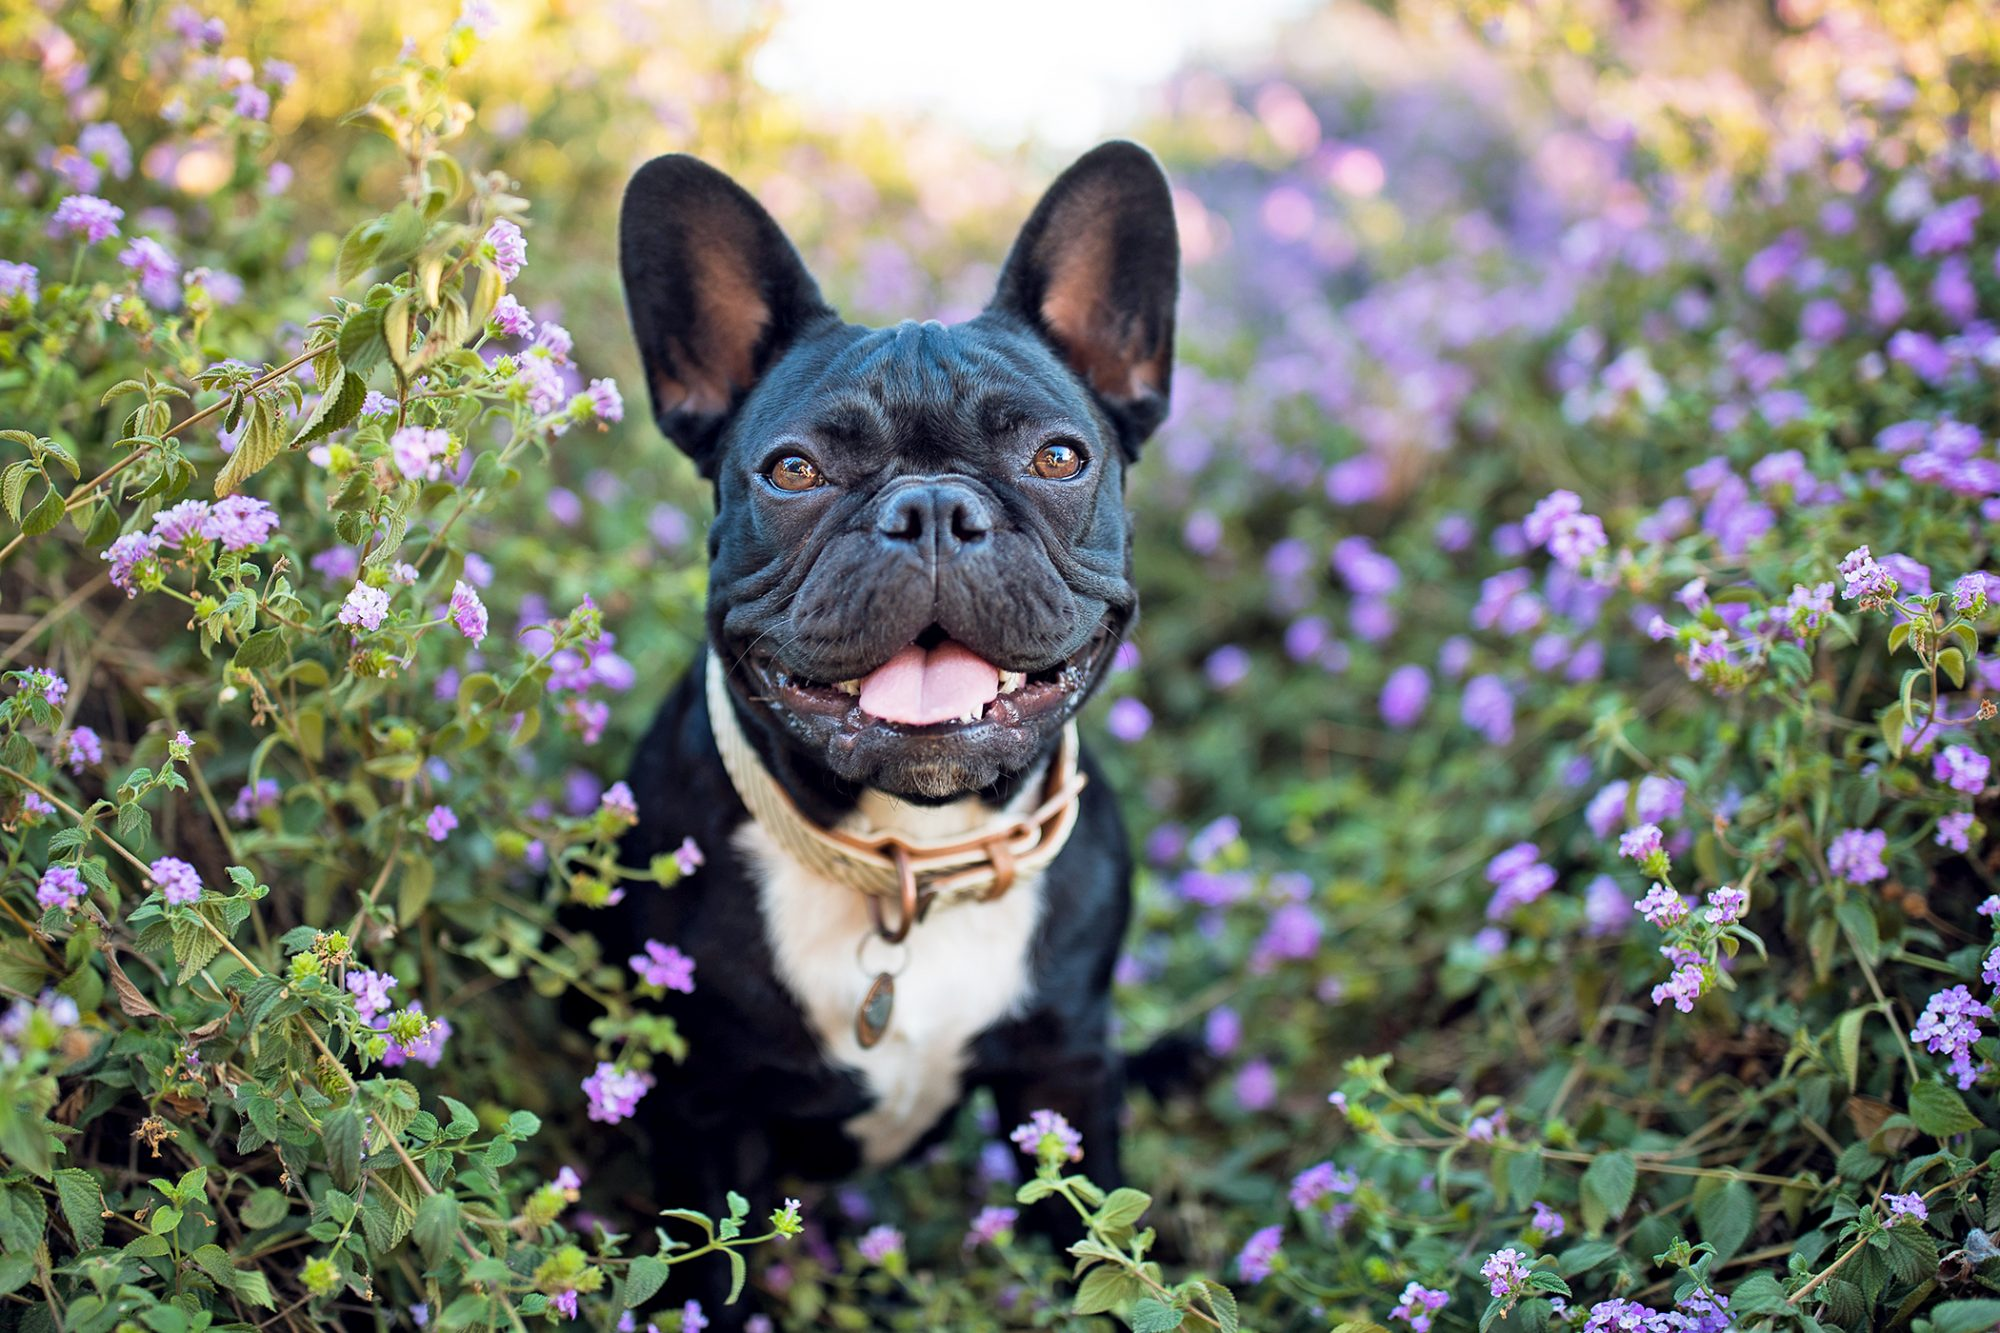 Black and white French Bulldog sitting in a garden of purple flowers